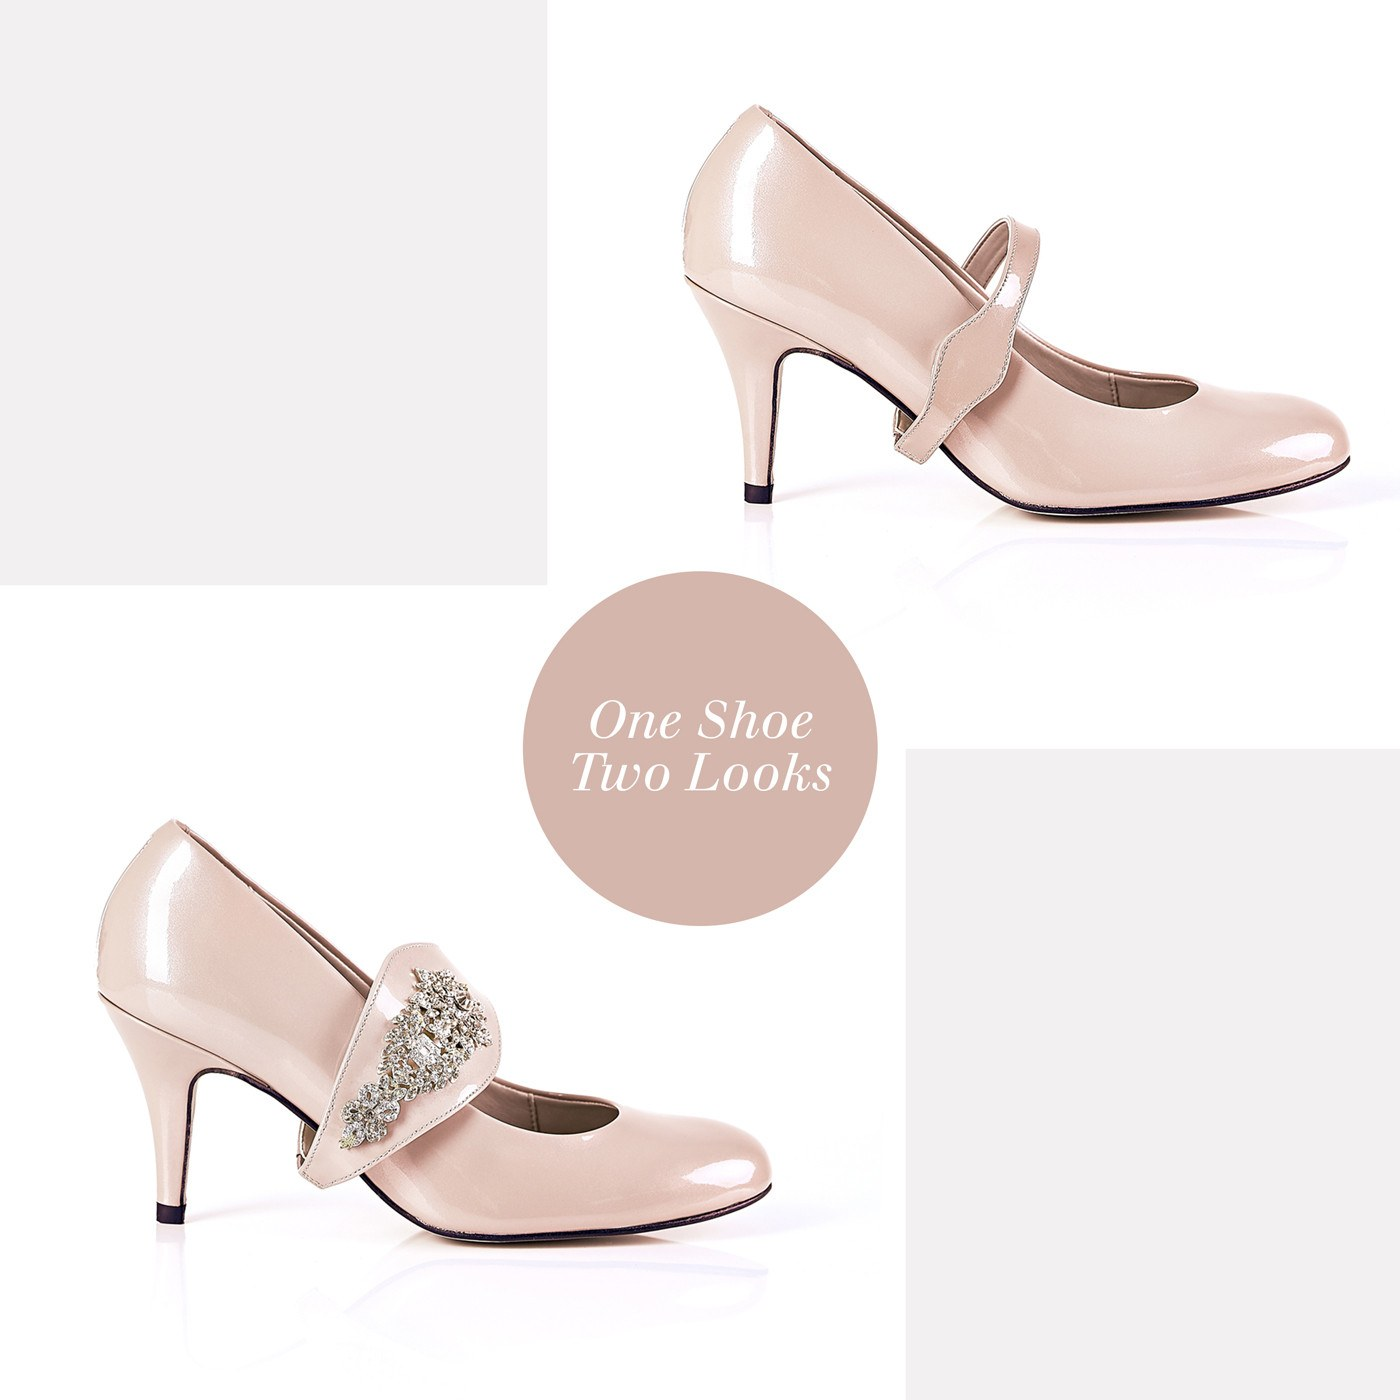 Equally Ever After in Gold Gems - 18 Hour Heels - Blush Leather - Shoes by Shaherazad